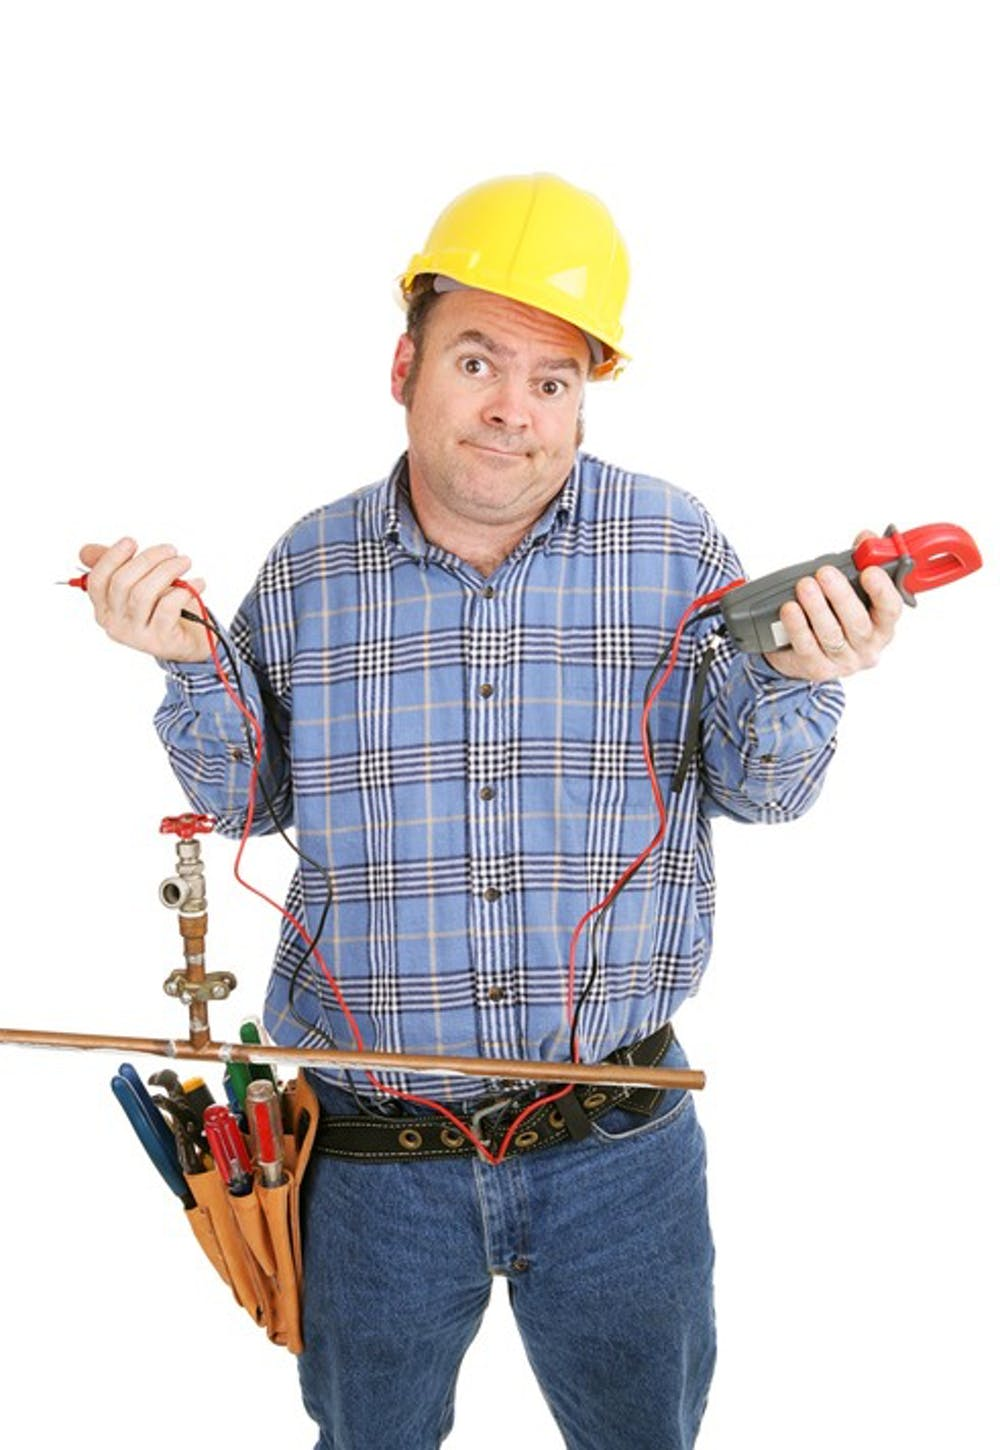 Electrician confused by a plumbing project.  He's holding a voltage meter which is useless on a plumbing pipe.  Isolated on white.